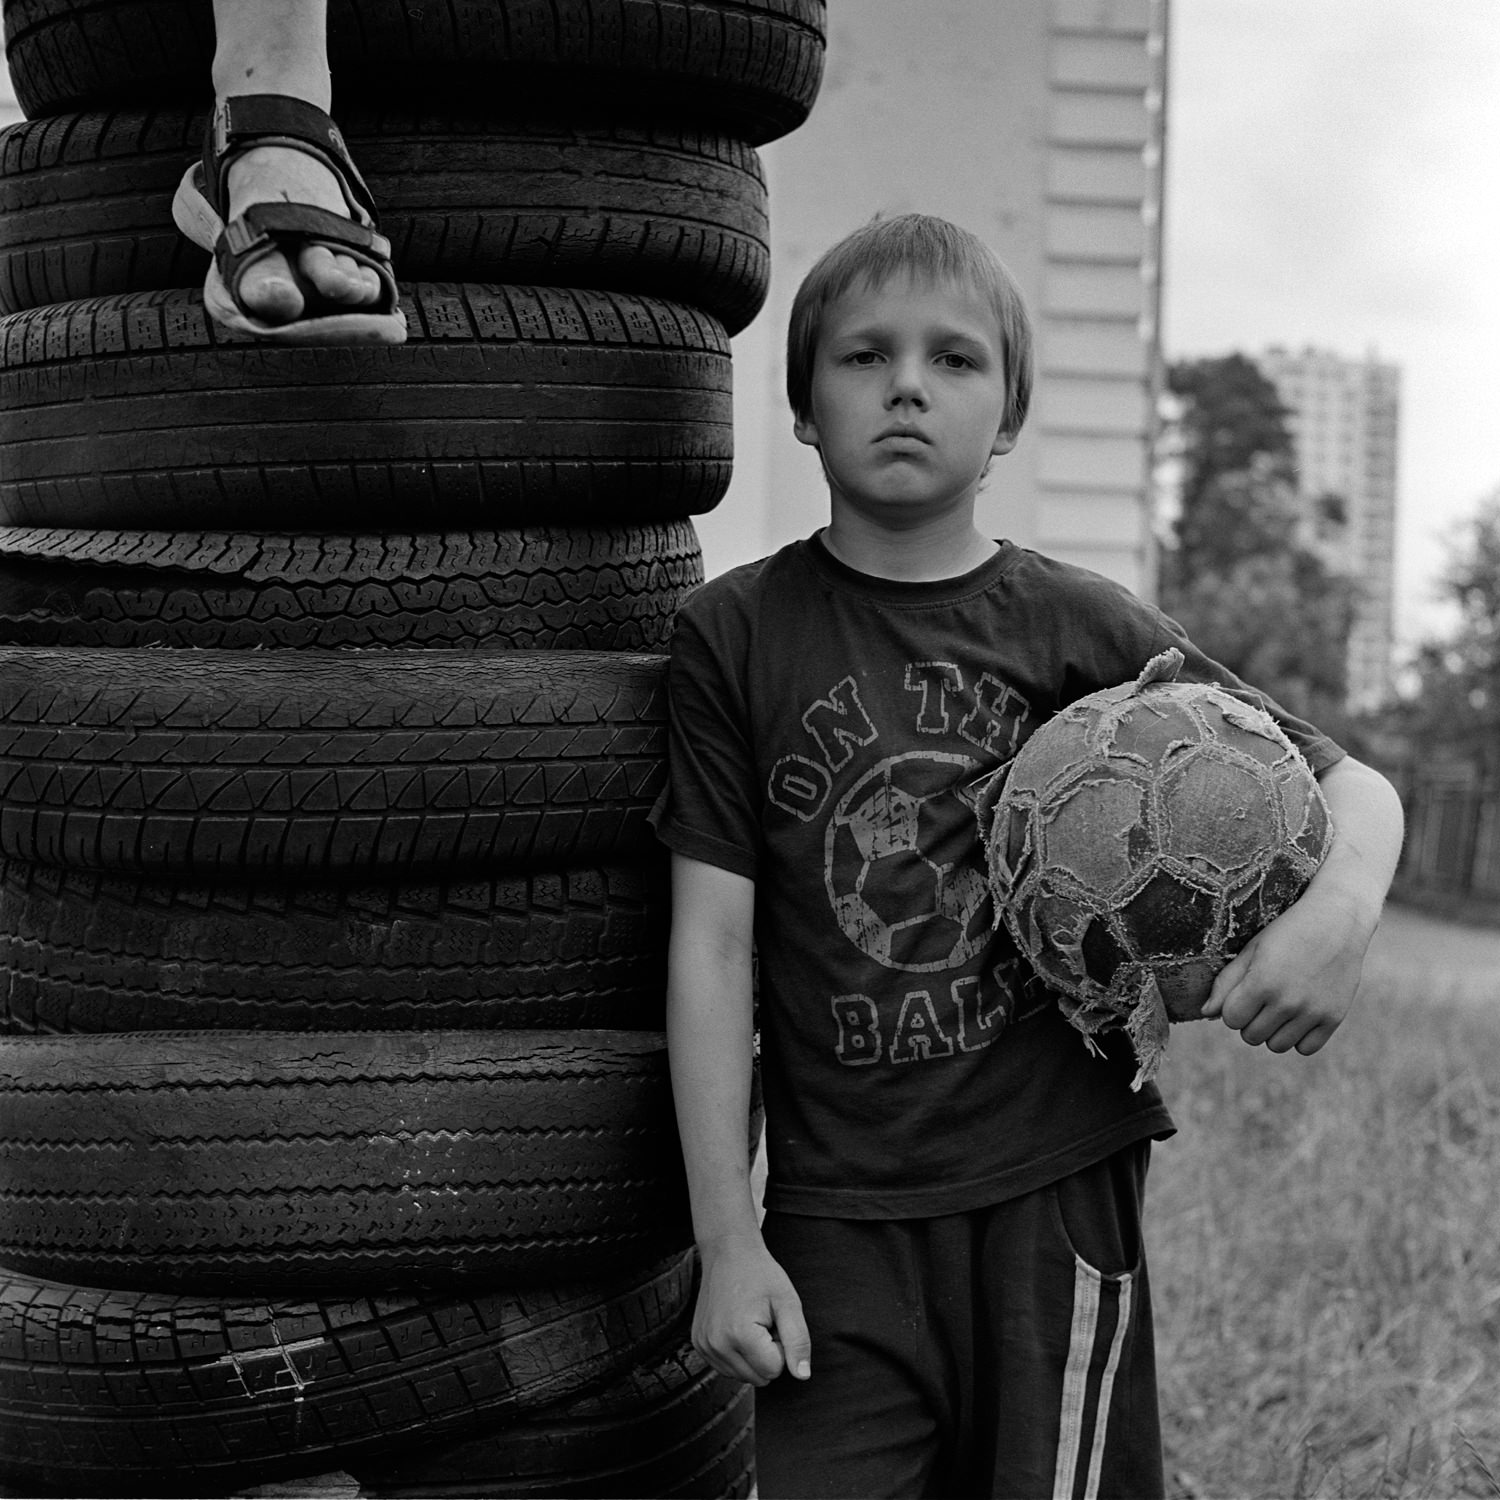 Black-white film portrait of a boy with a ball under his left hand and a friend sitting on a pile of car tires near school biulding in Mins city, Belarus